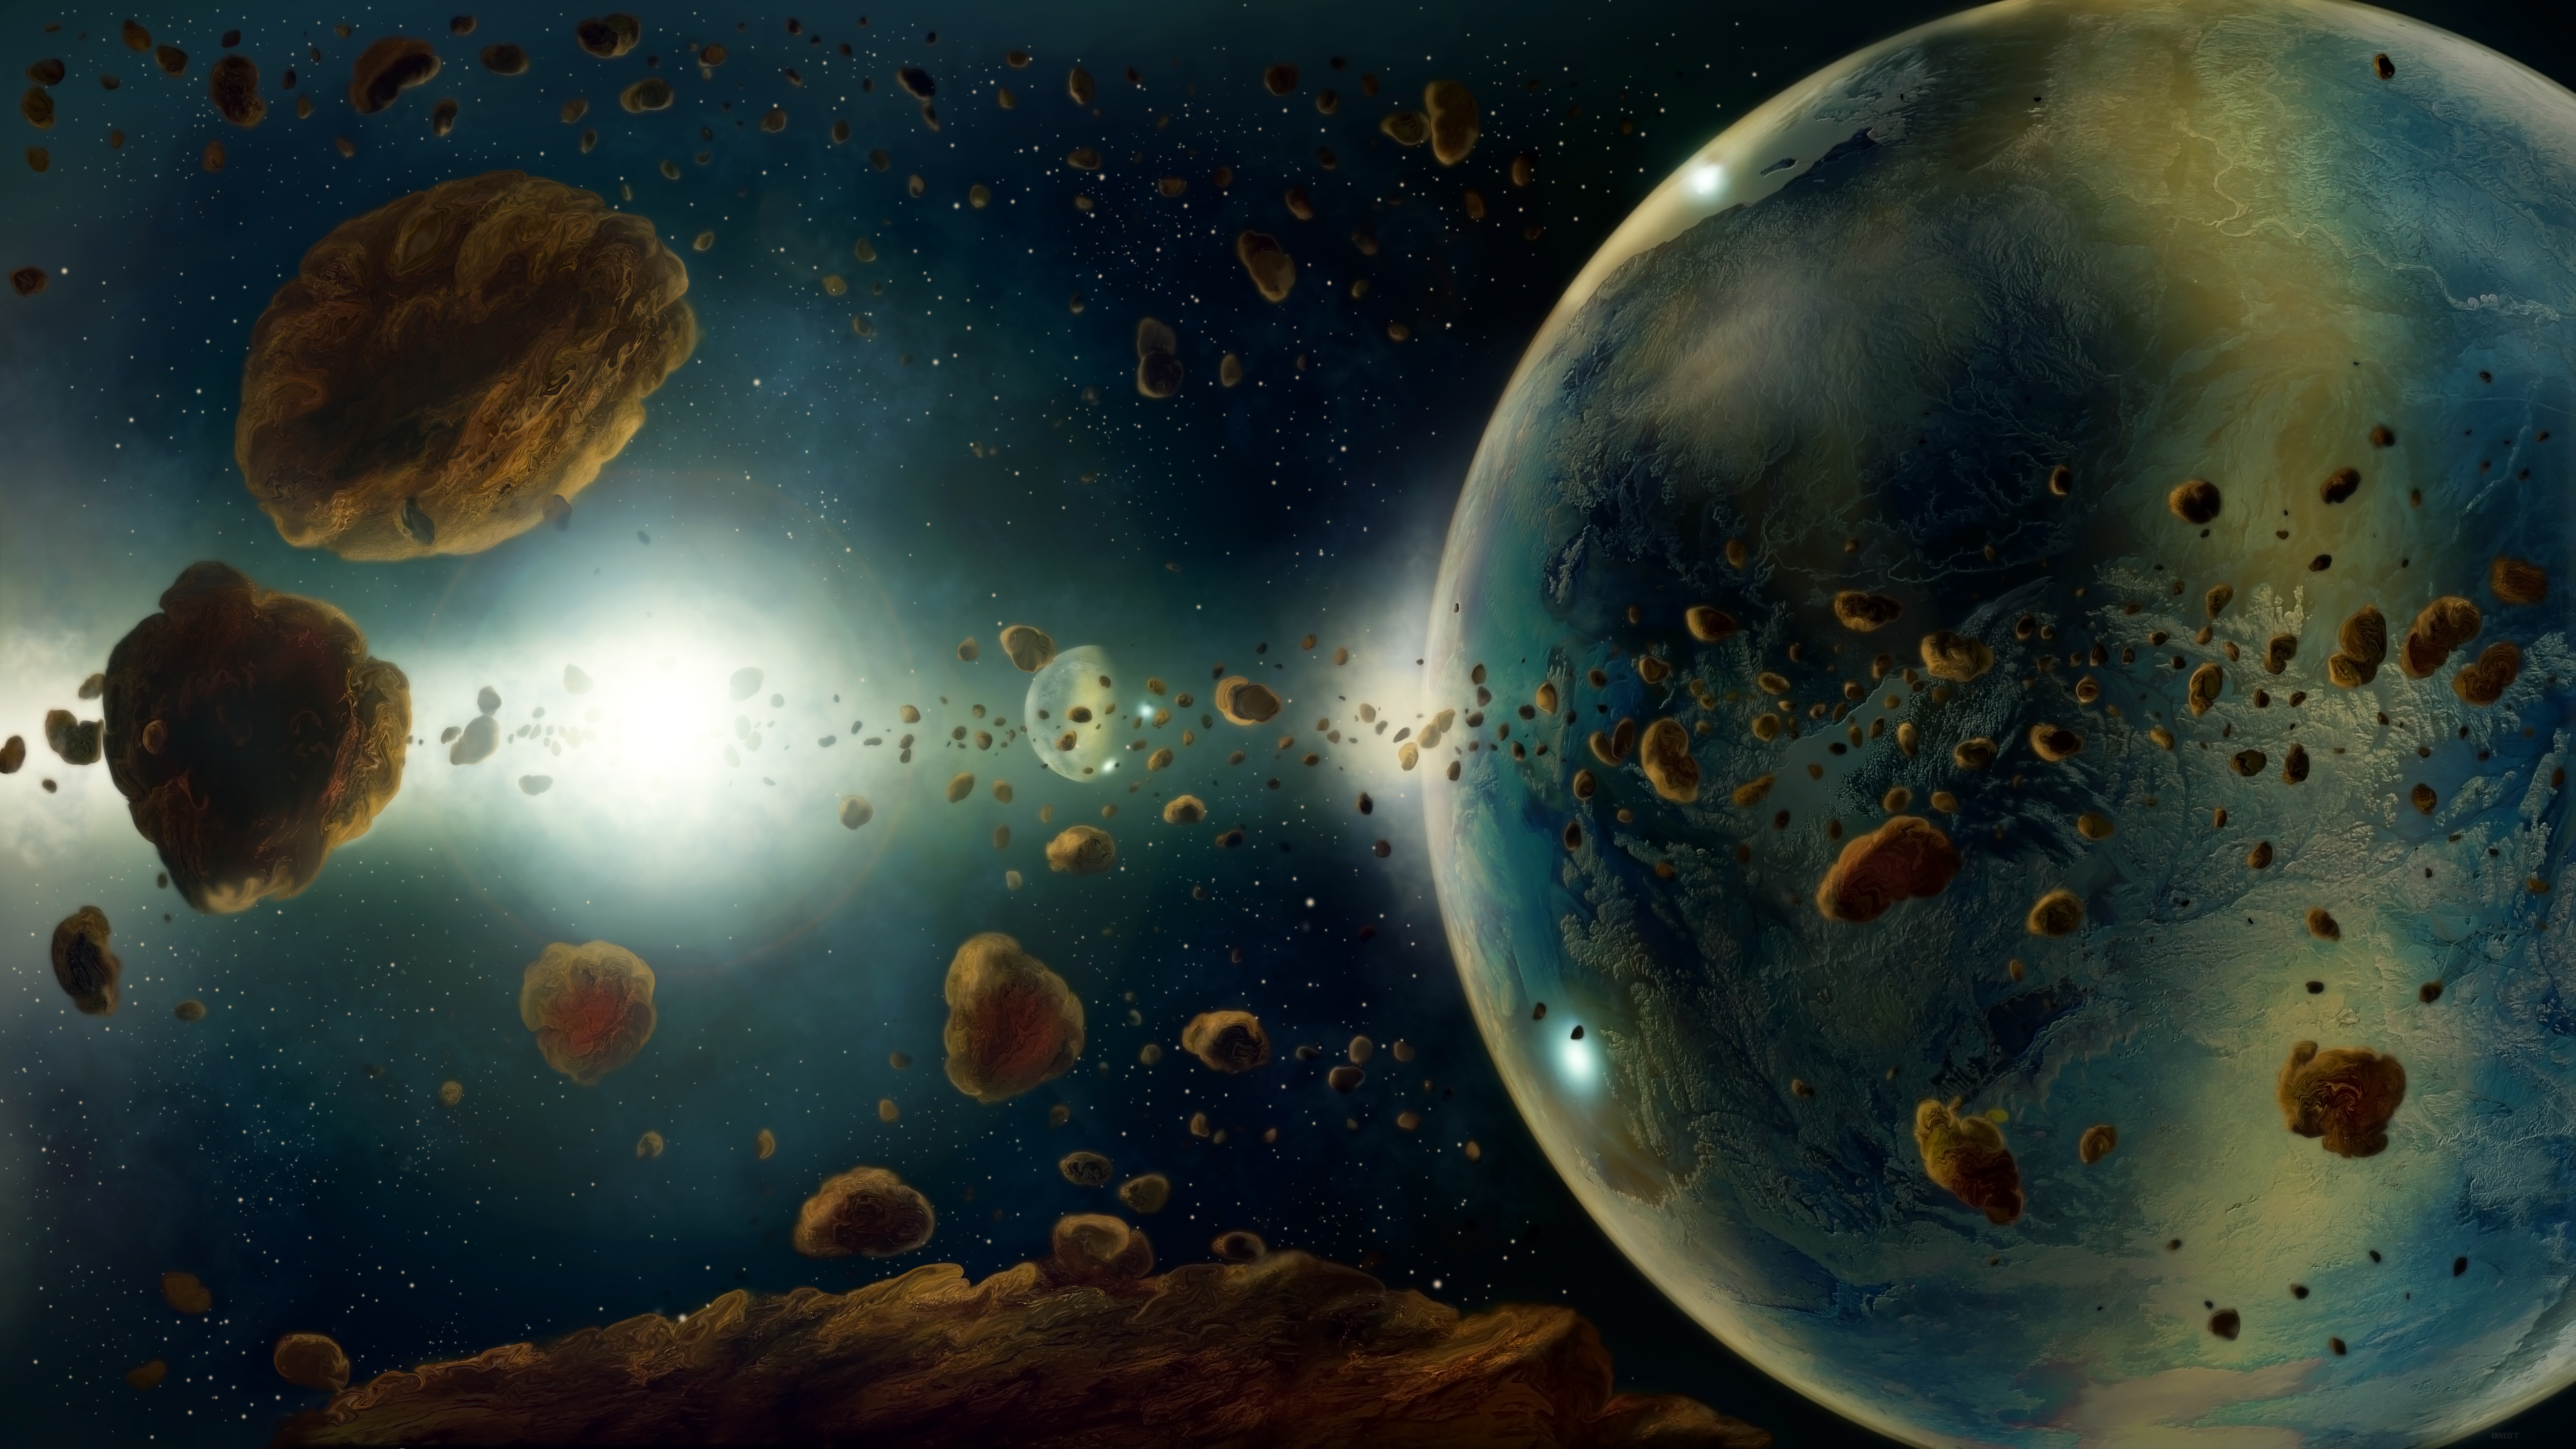 asteroid planets - HD1920×1080